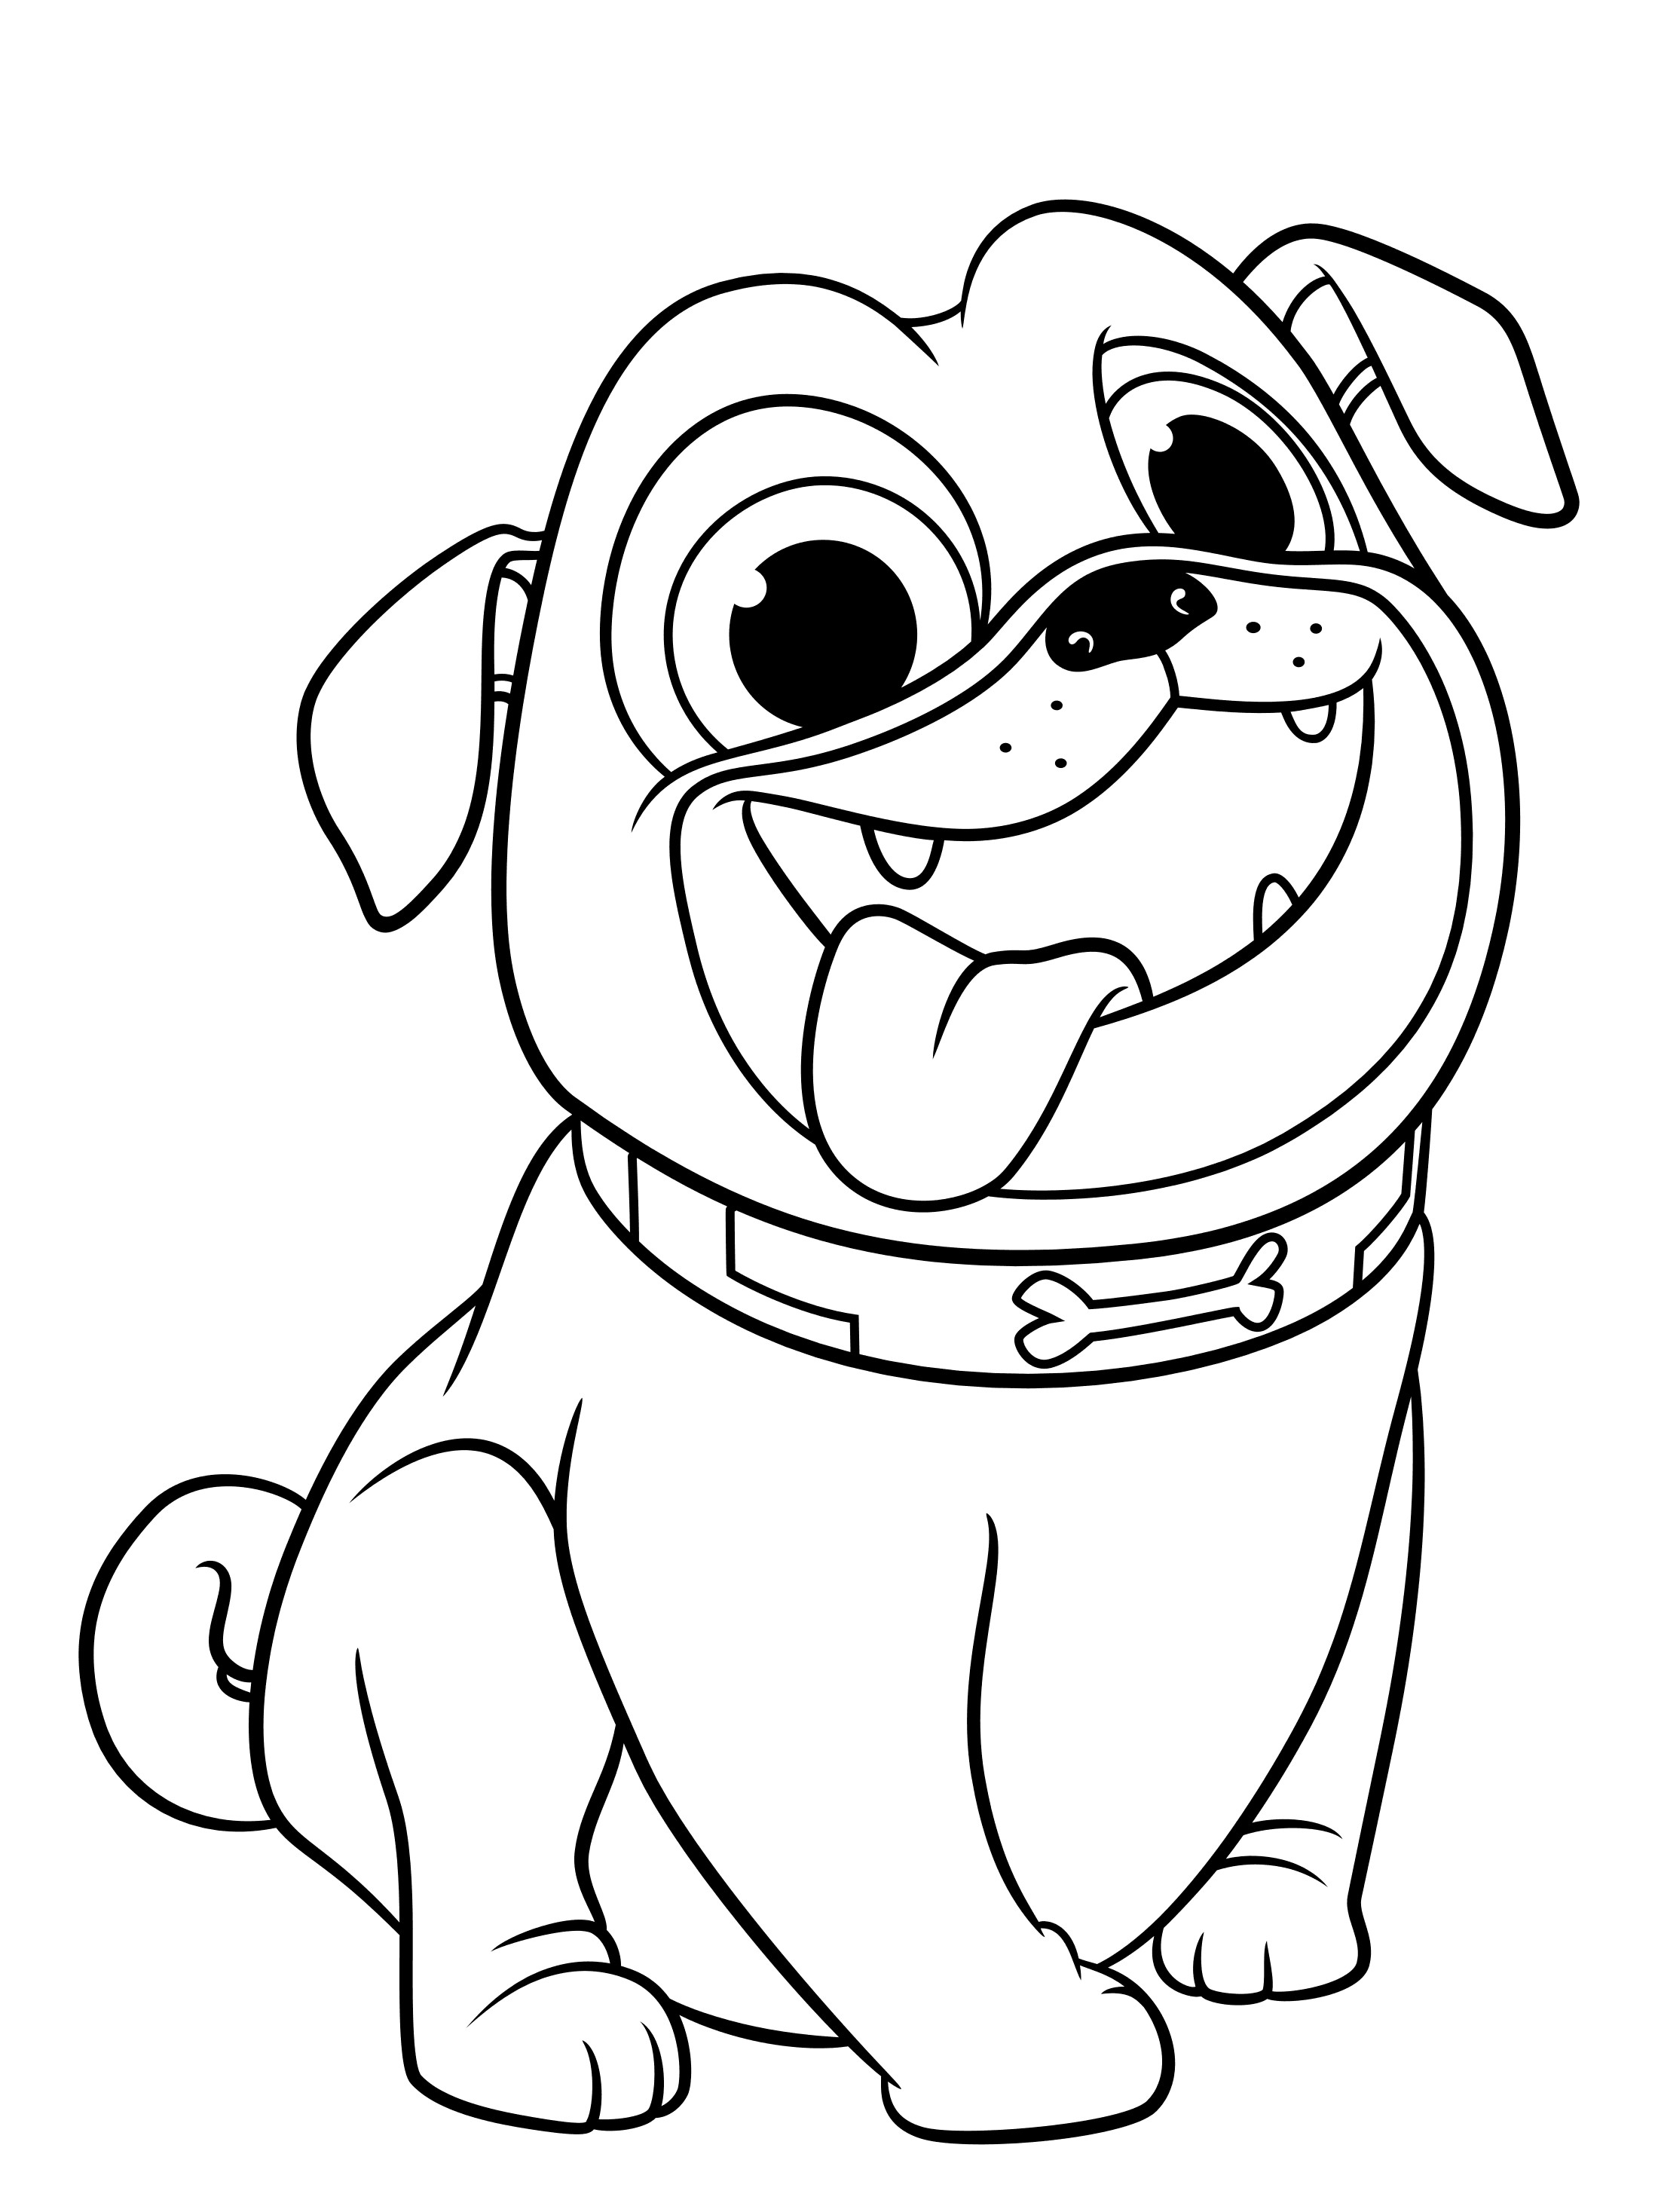 printable puppy pictures puppy dog pals coloring pages to download and print for free pictures puppy printable 1 1